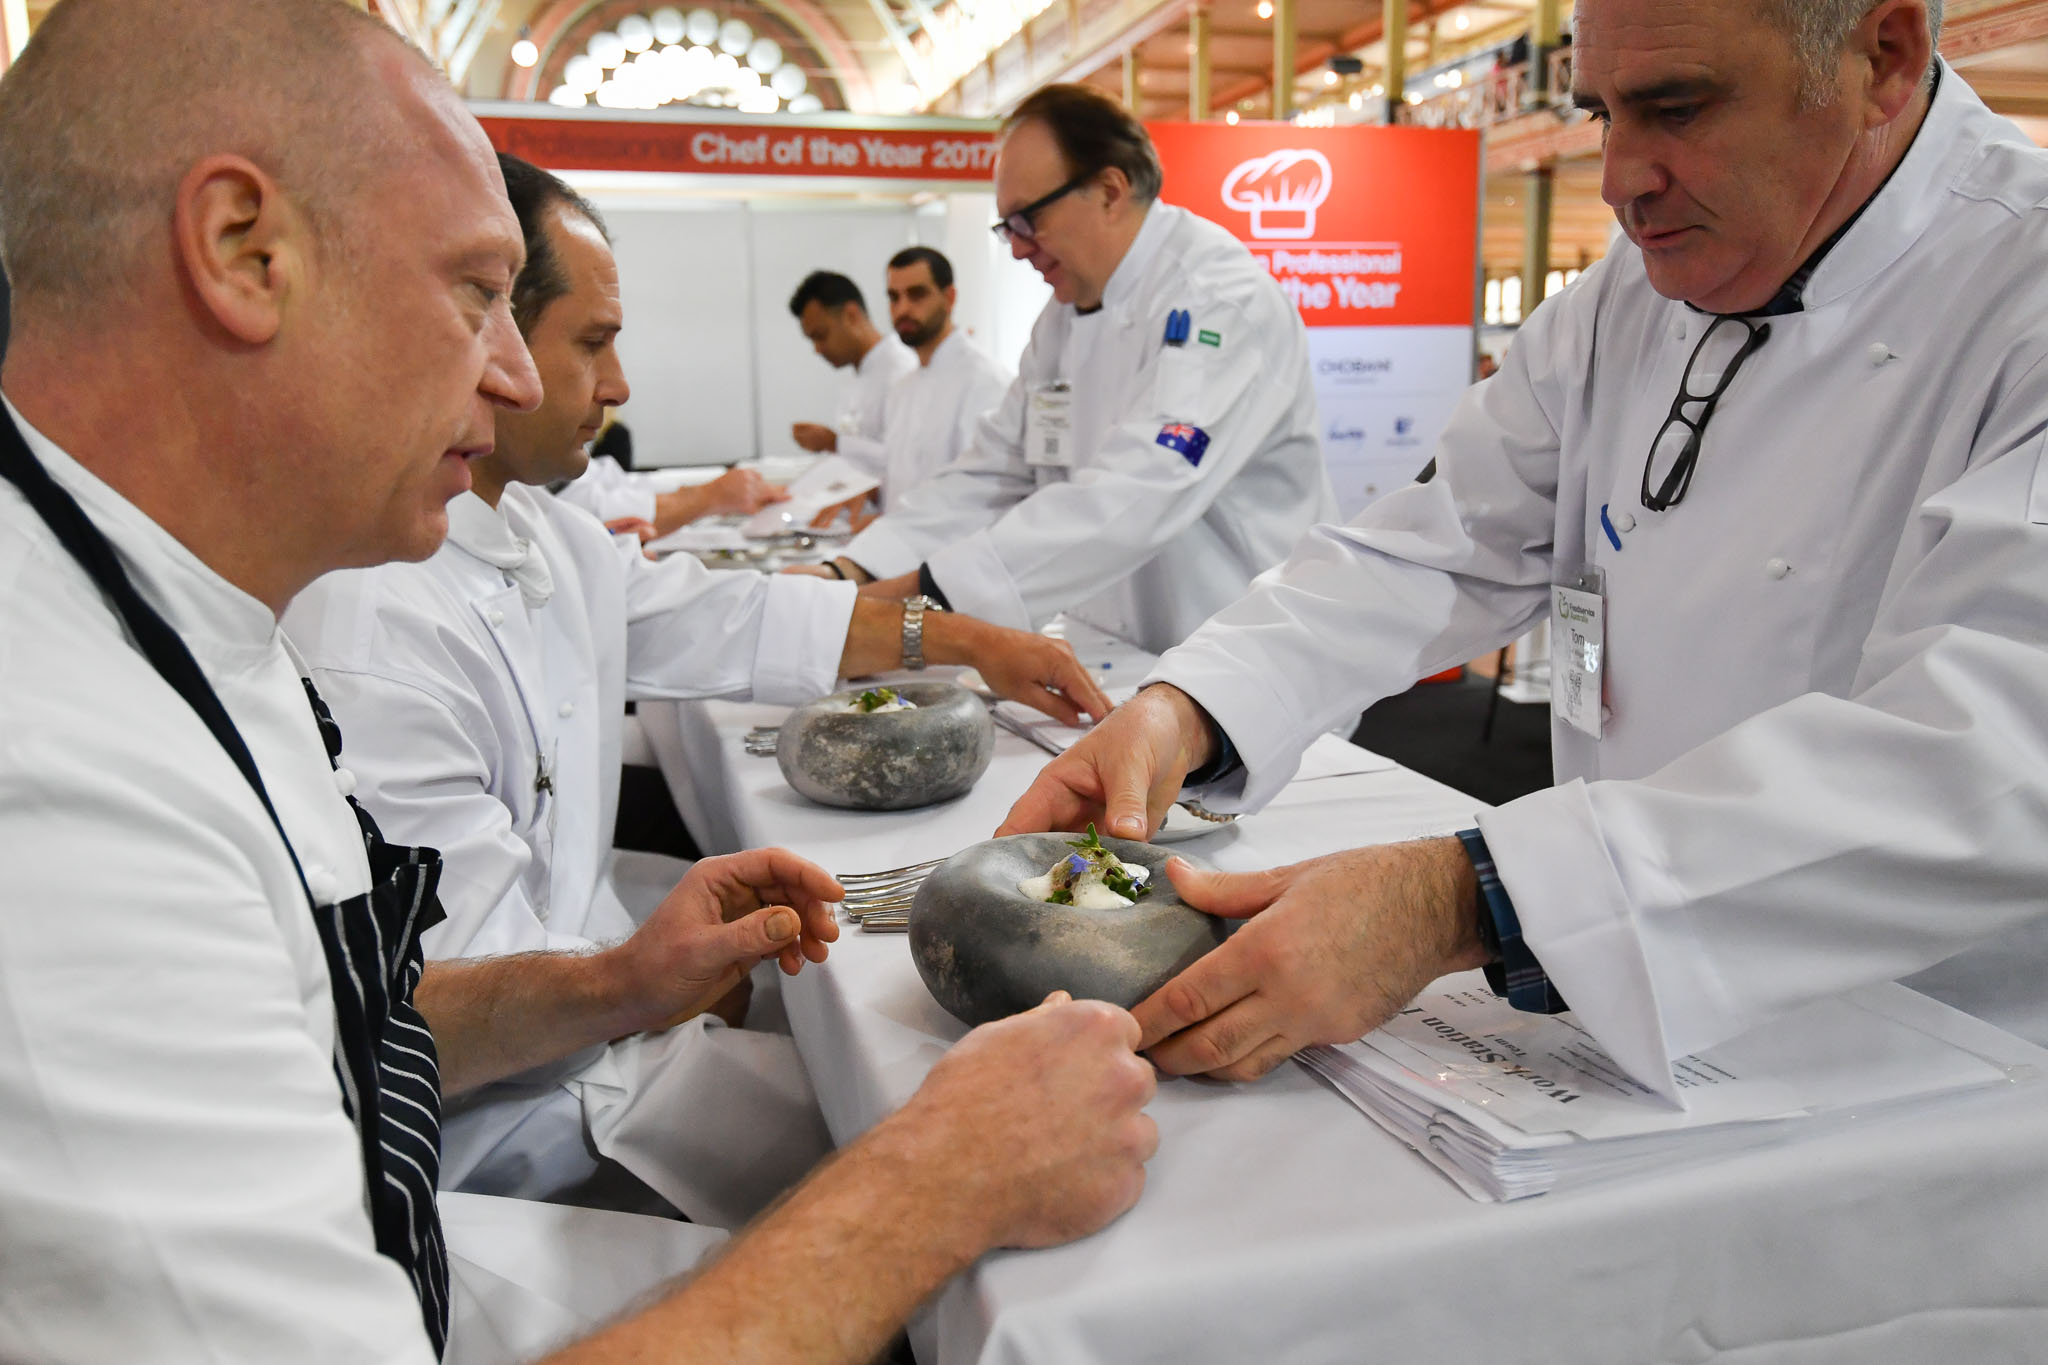 Melbourne, 30 May 2017 - Tom Milligan of the Bocuse d'Or Academy Australia delivers the fish dish for Donovan Cooke from The Atlantic Restaurant a judge of the fish plate to taste at the Australian selection trials of the Bocuse d'Or culinary competition held during the Food Service Australia show at the Royal Exhibition Building in Melbourne, Australia. Photo Sydney Low